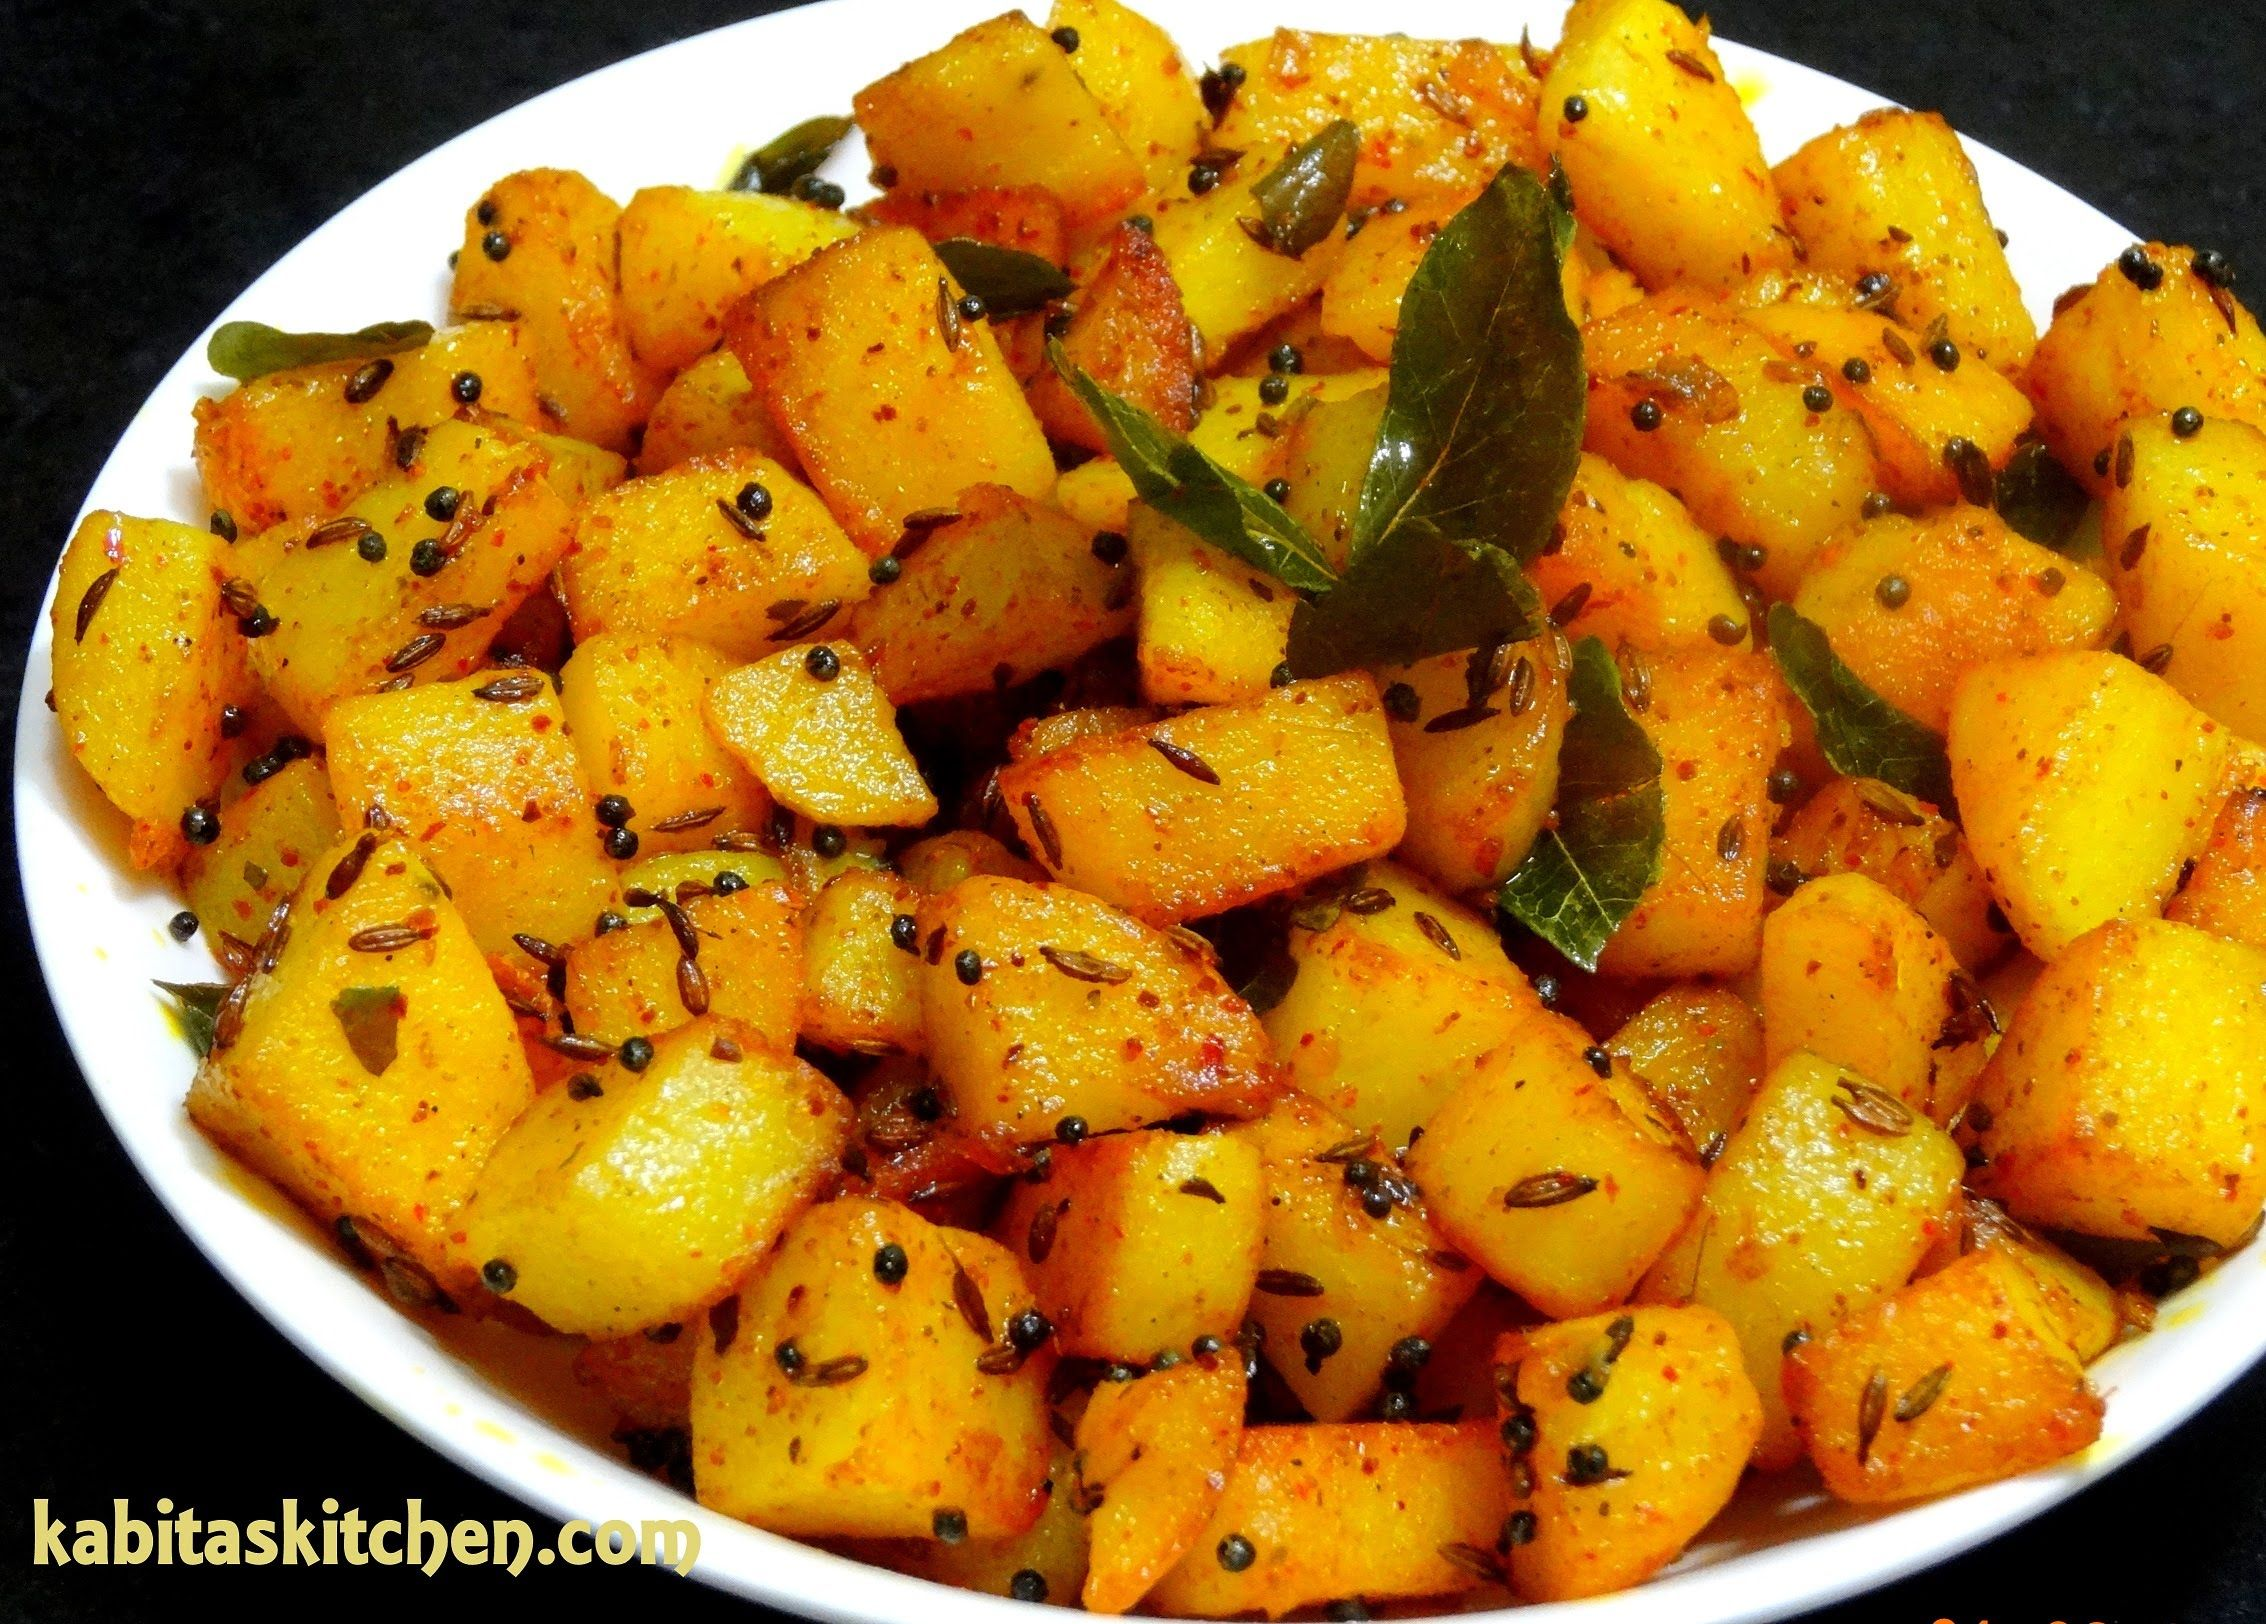 Aloo fry recipe simple potato fry for lunch box easy and quick aloo fry recipe simple potato fry for lunch box easy and quick potato re forumfinder Images